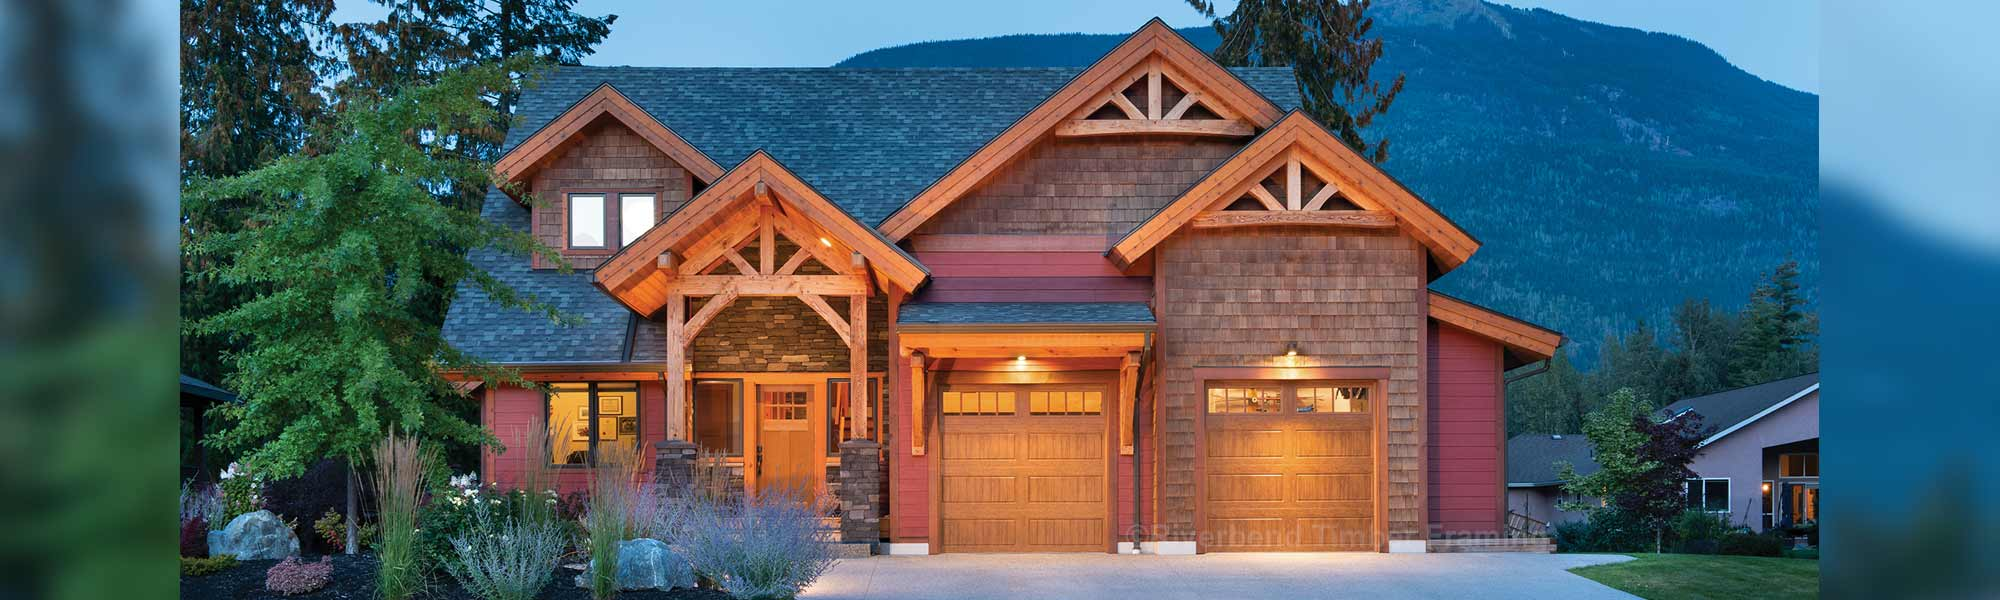 Revelstoke timber frame home